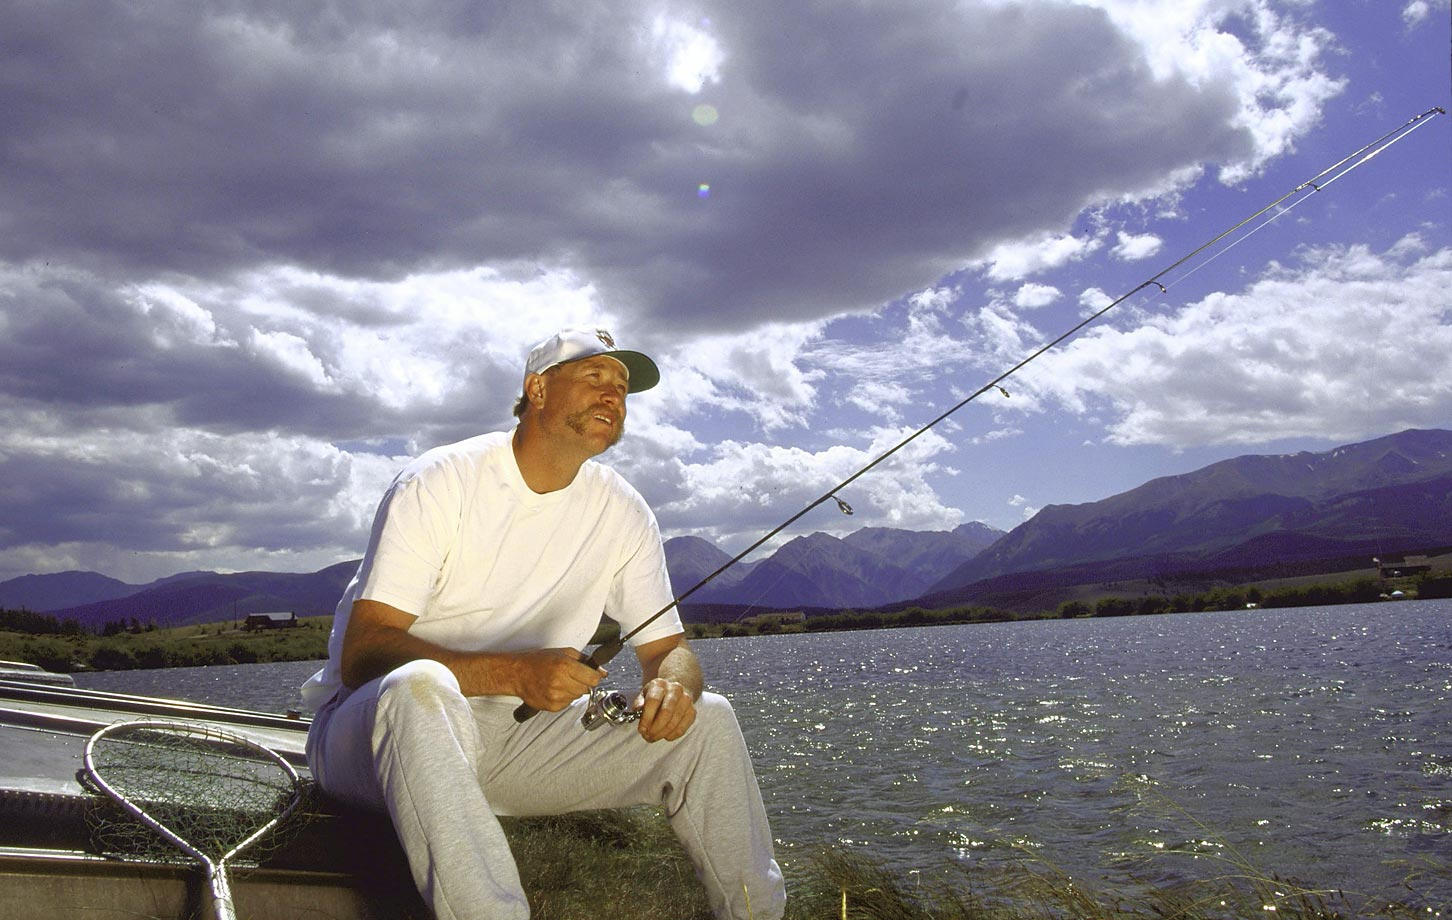 The 2008 Hall of Fame inductee fishes near Colorado Springs in August 1994, during the last season of his career. Gossage won 124 games and recorded 310 saves during his career.